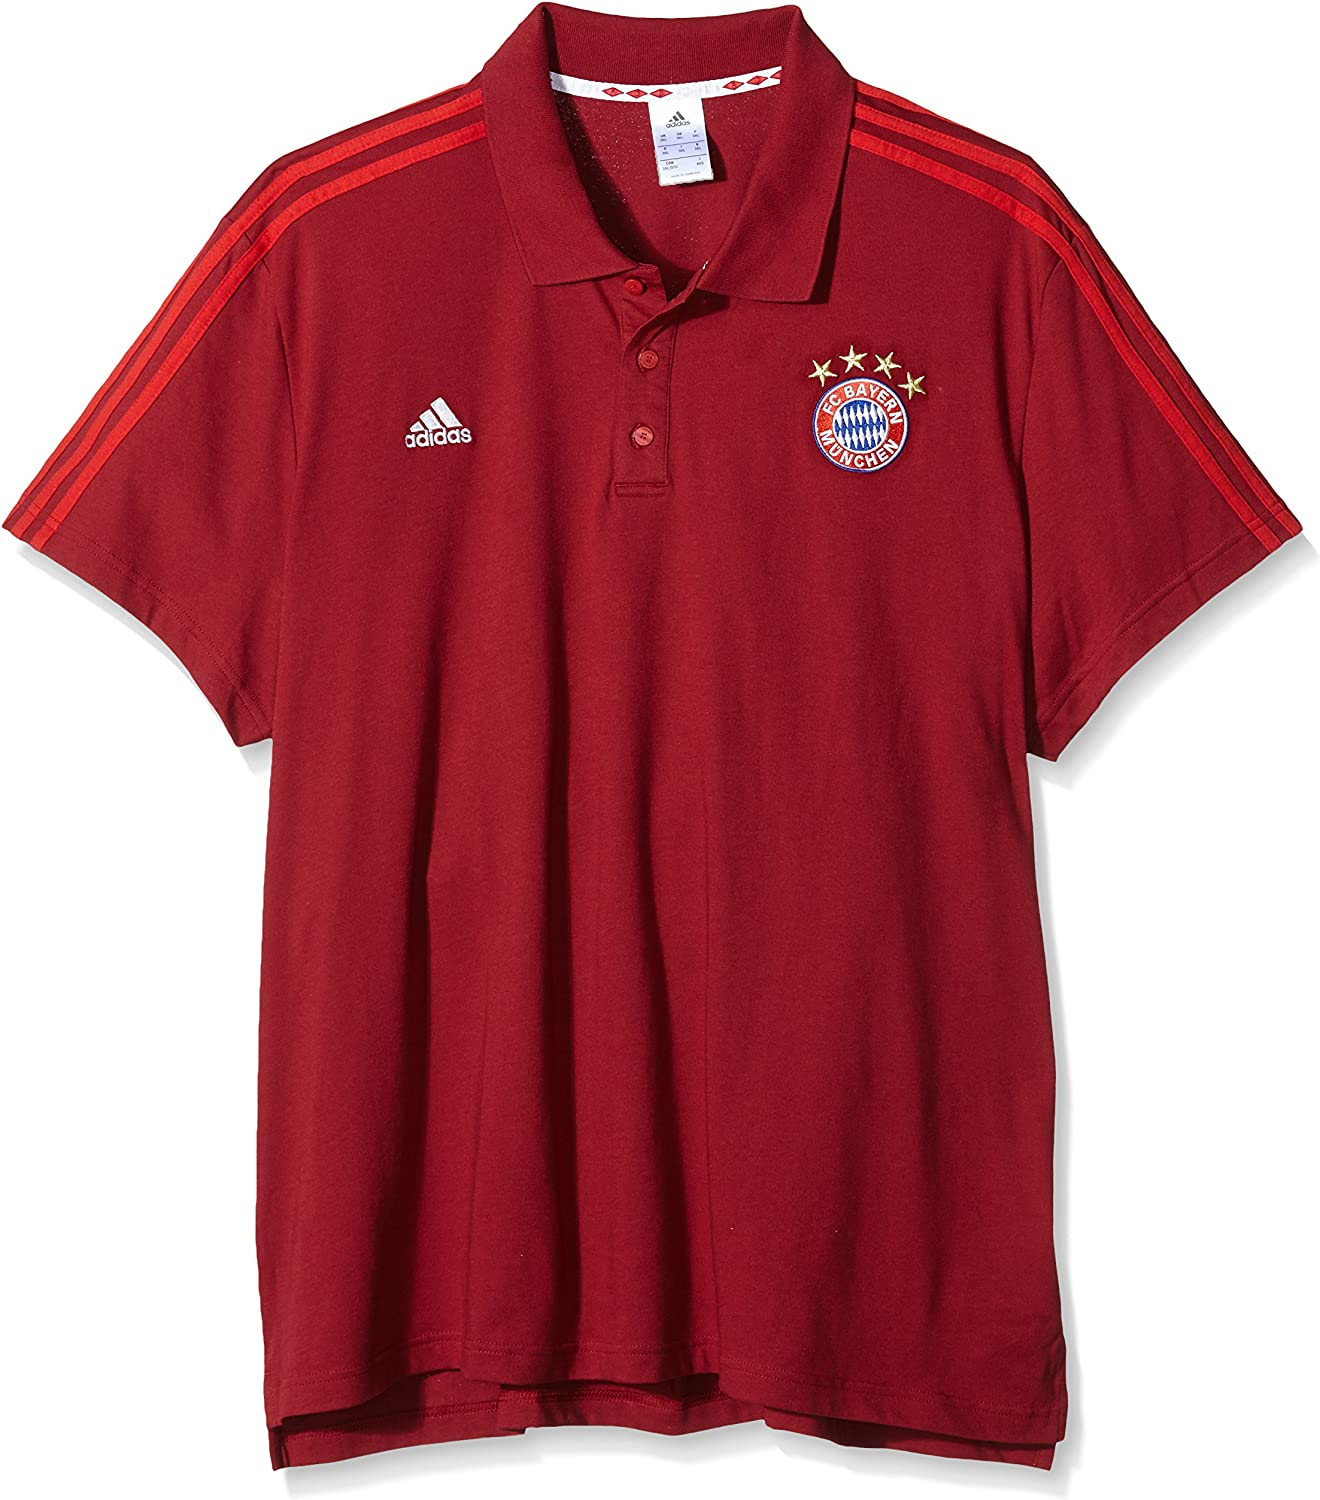 adidas 2015-2016 Bayern Munich 3S Polo Shirt (: Amazon.es: Ropa y ...